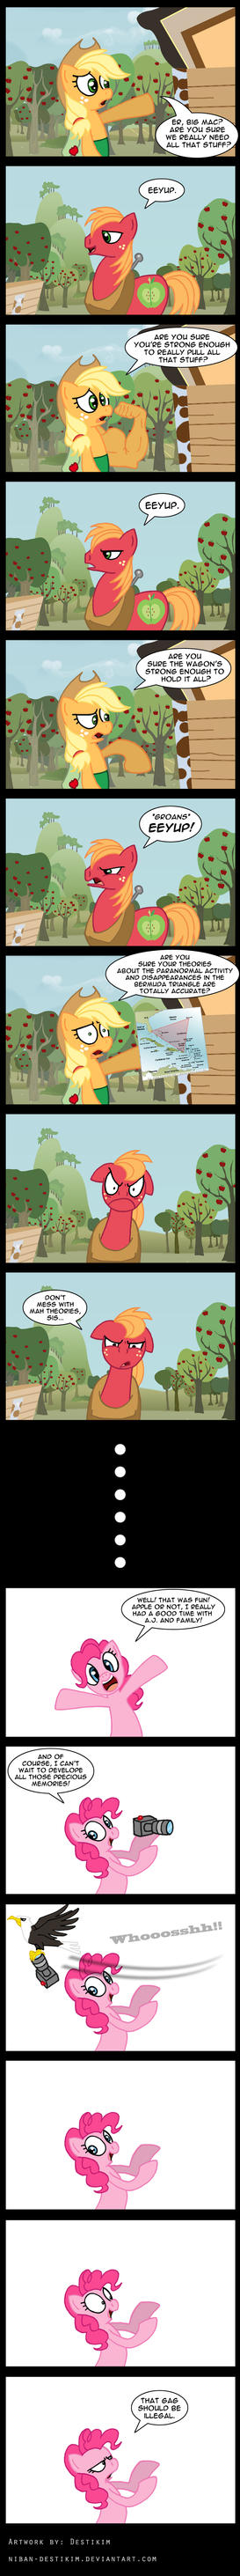 My Little Skeptical by Niban-Destikim